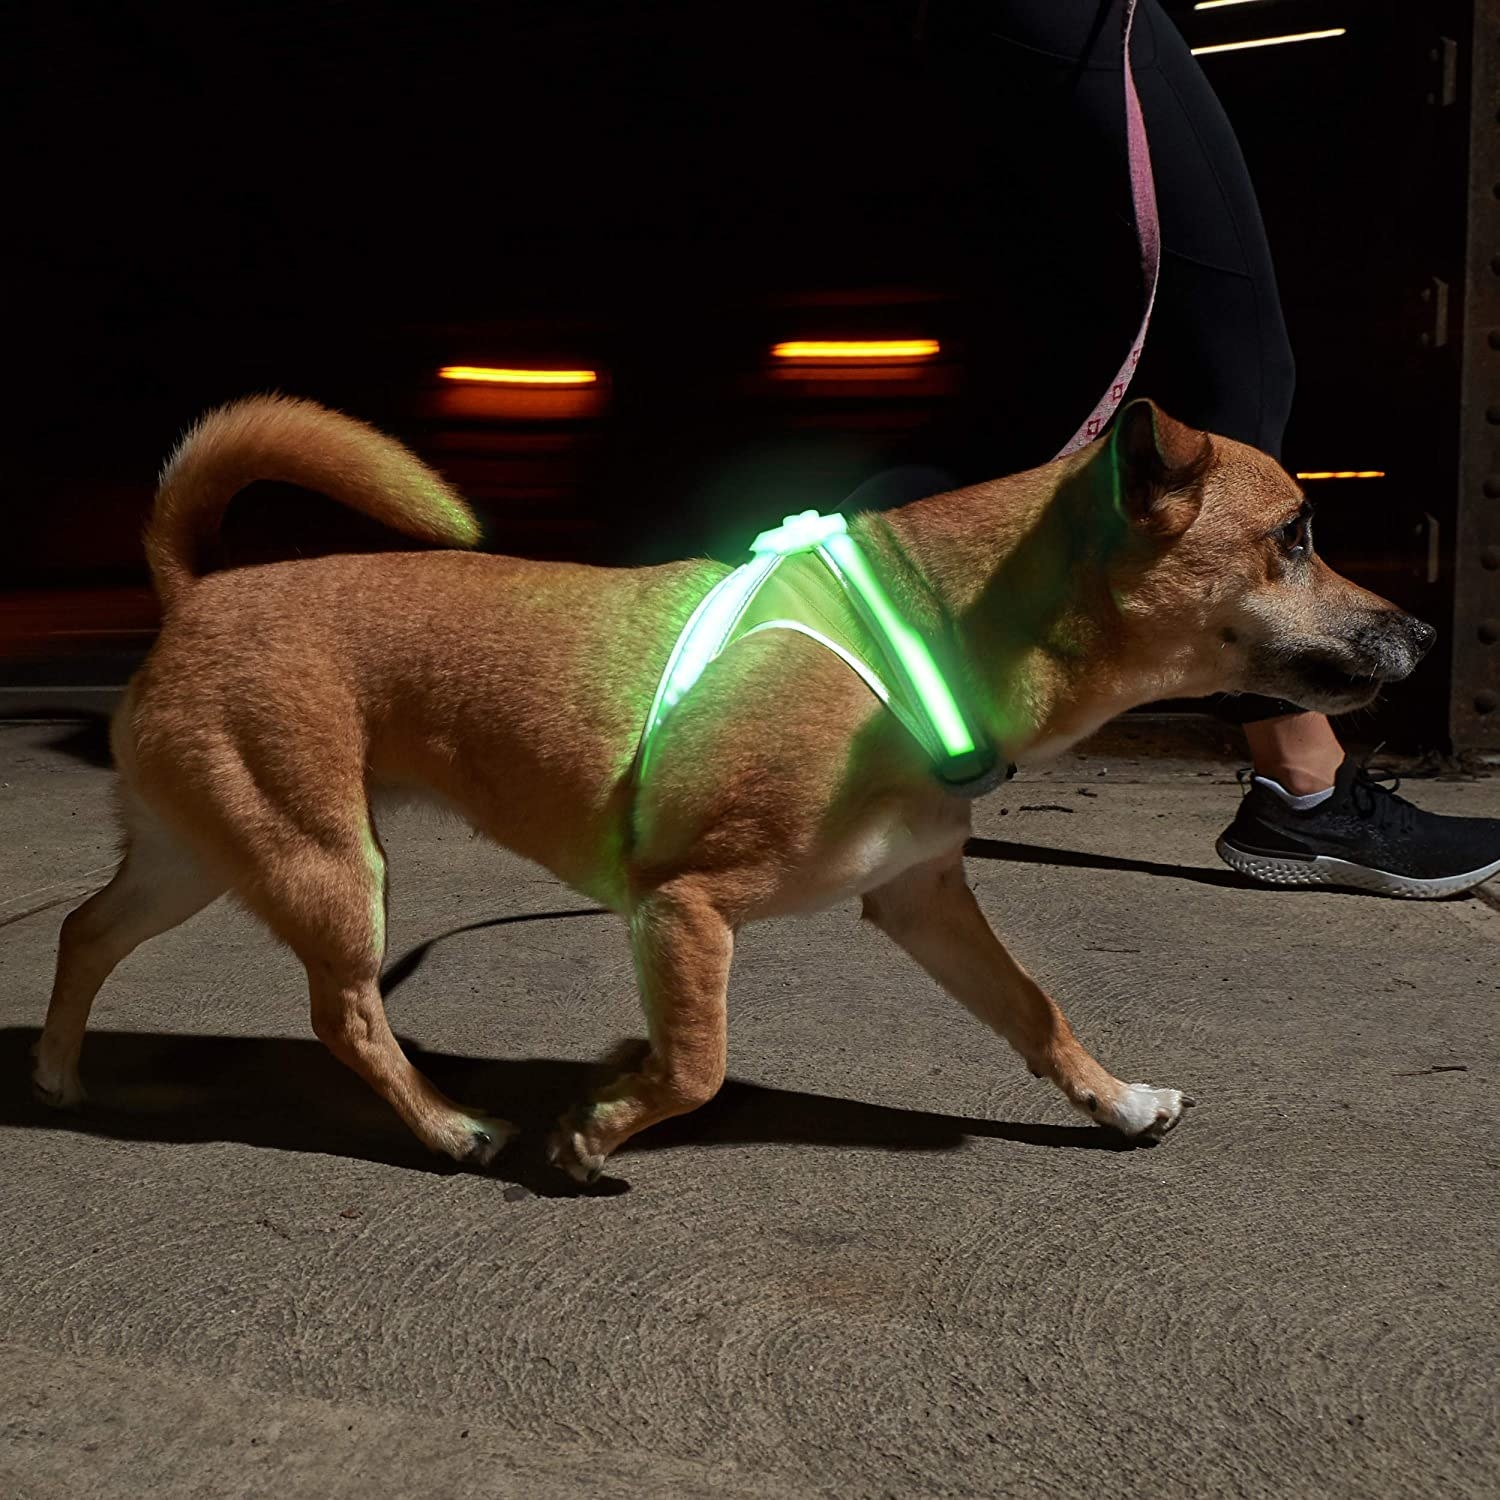 Dog wearing the green light up harness